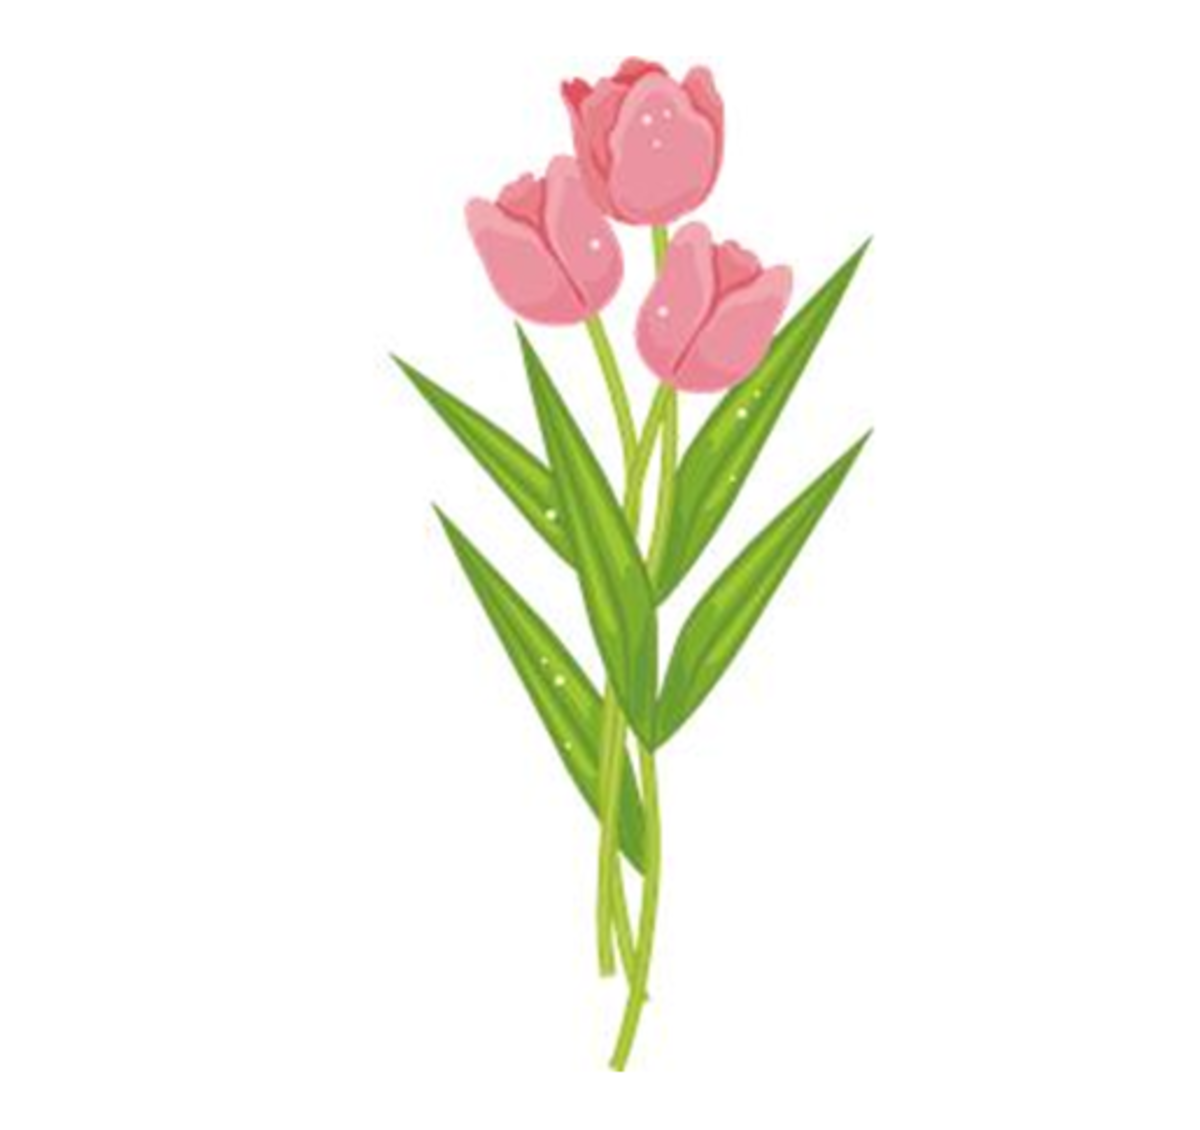 Three Pink Tulips with Dew Drops